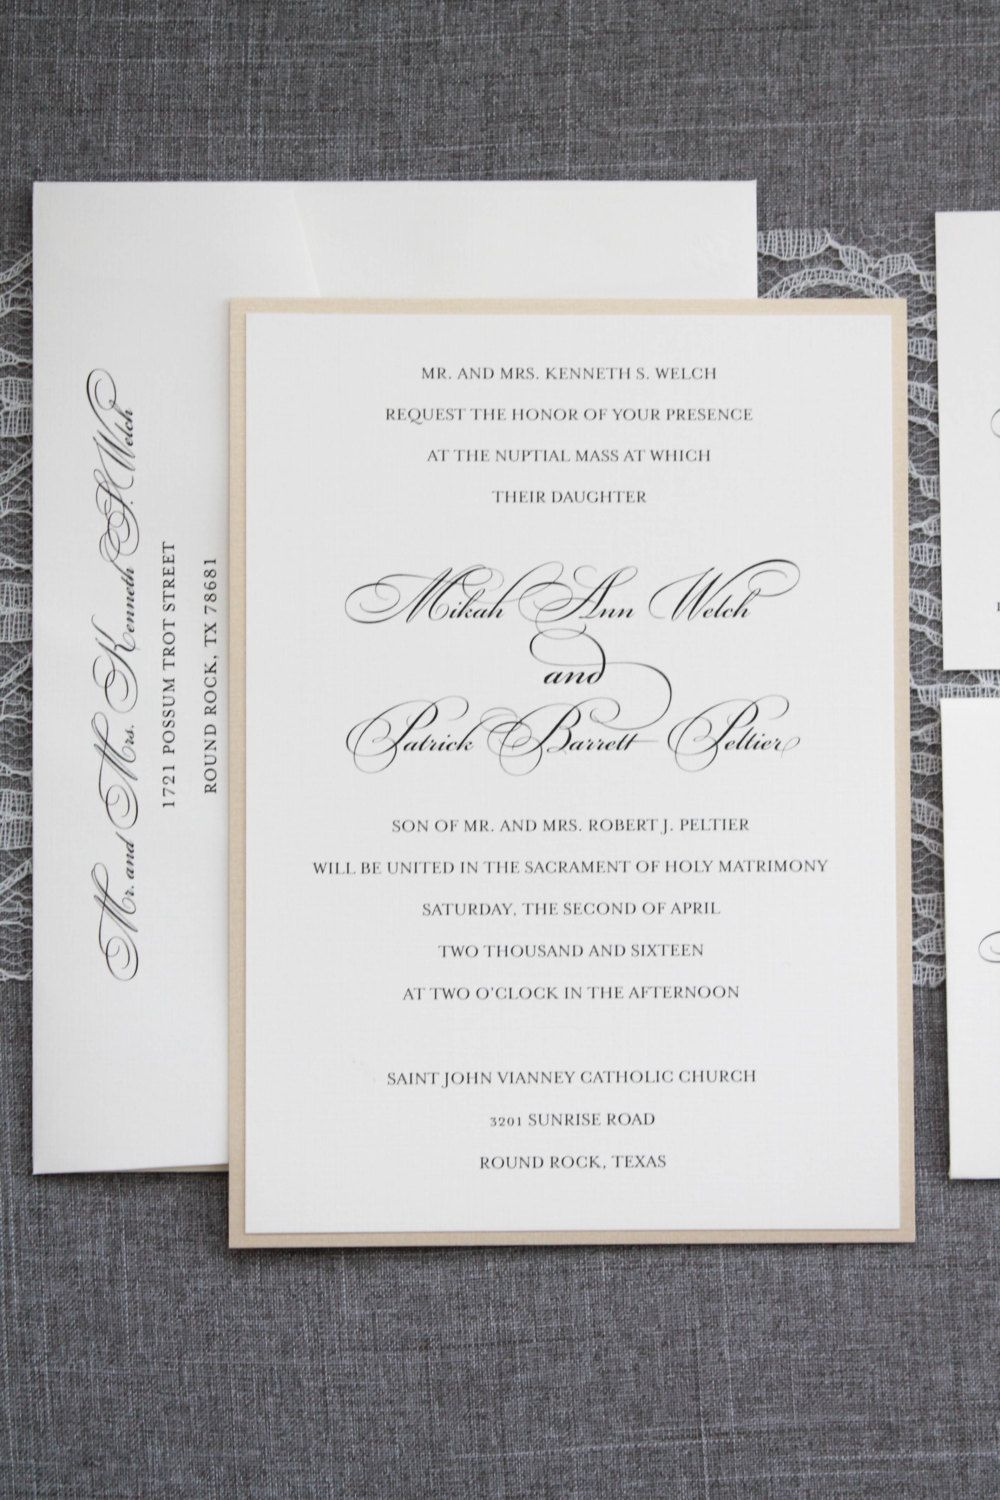 I Love A Sophisticated Formal And Traditional Wedding Send Out This Invitation Wedding Invitation Design Spring Wedding Invitations Gold Wedding Invitations